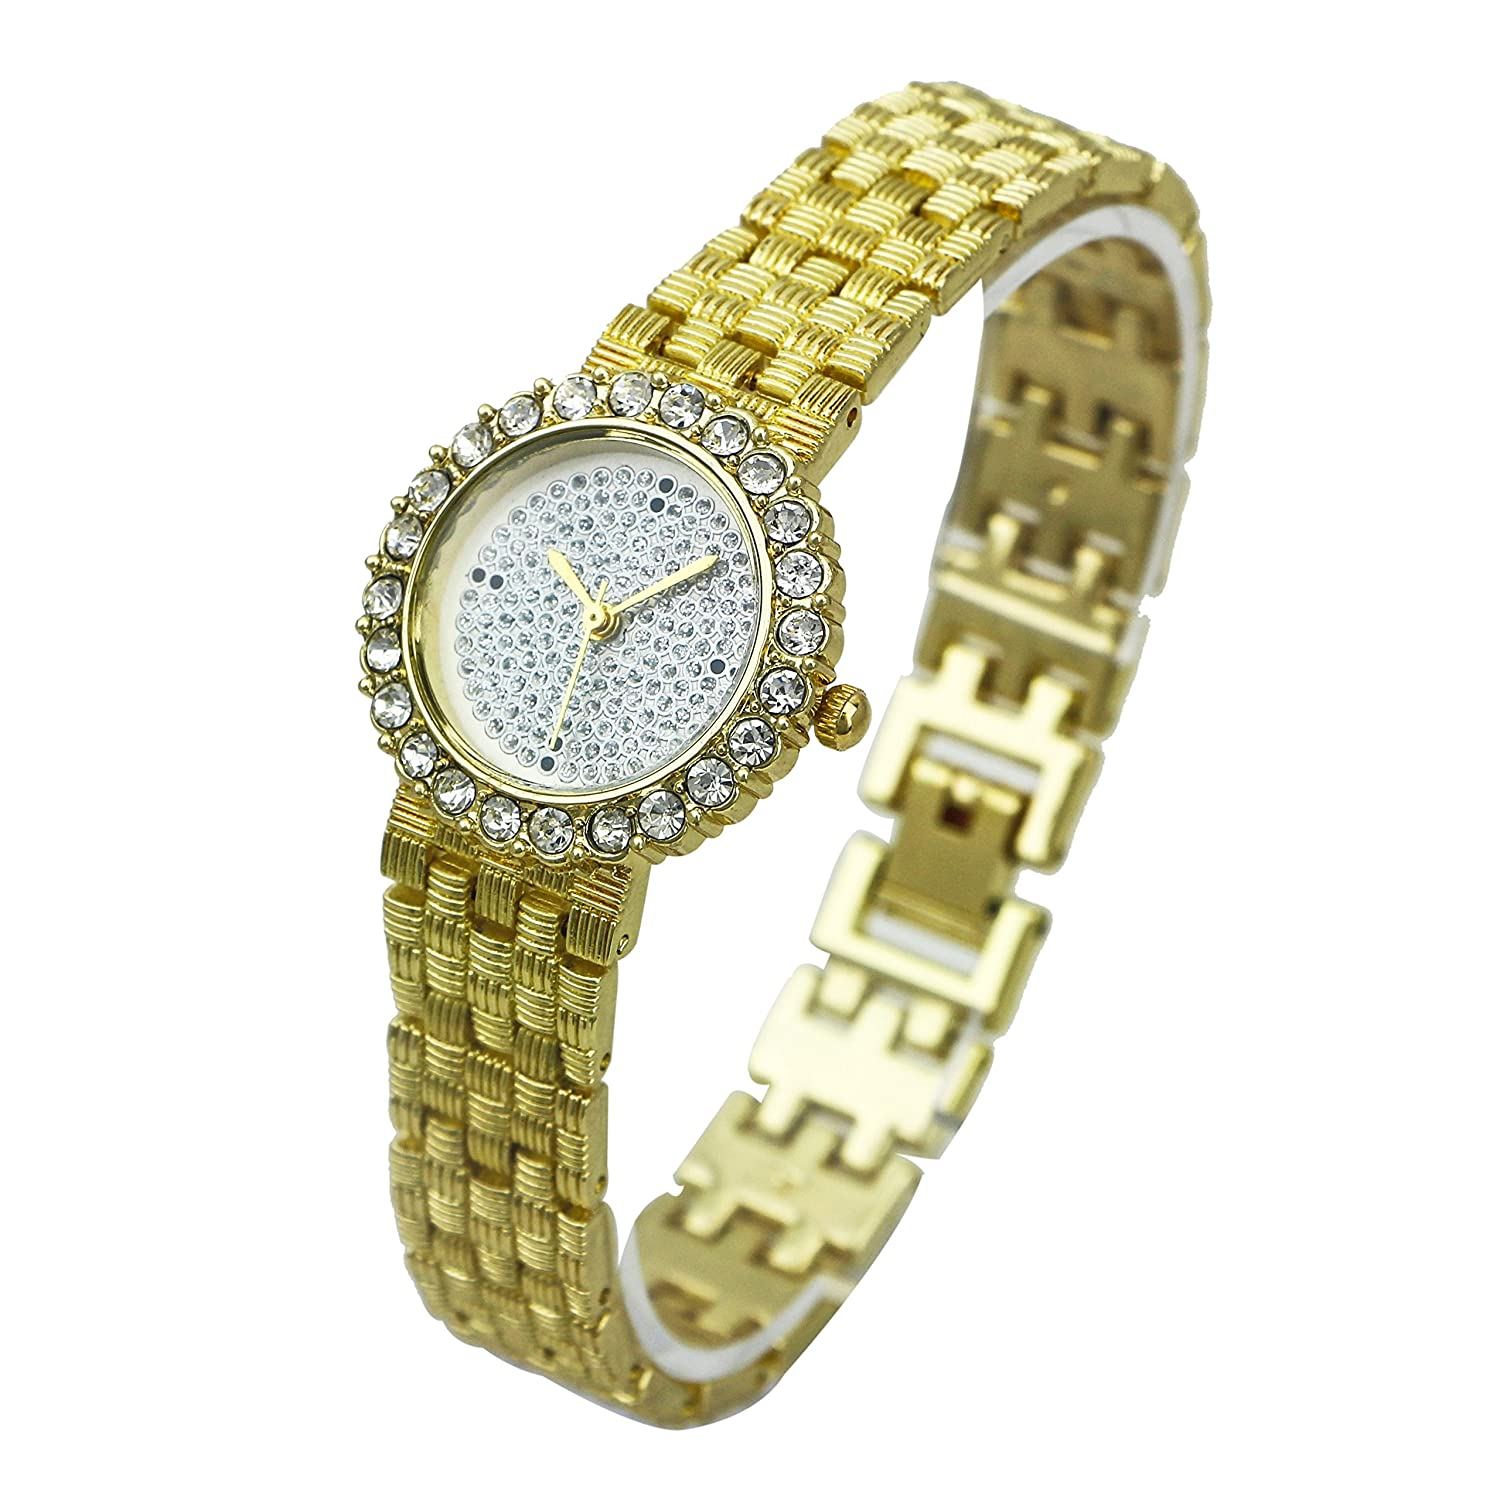 Amazon.com: ShoppeWatch Ladies Bracelet Watch Gold Tone Round Face CZ Crystals Embellished Dial SW9612GDWH: Watches